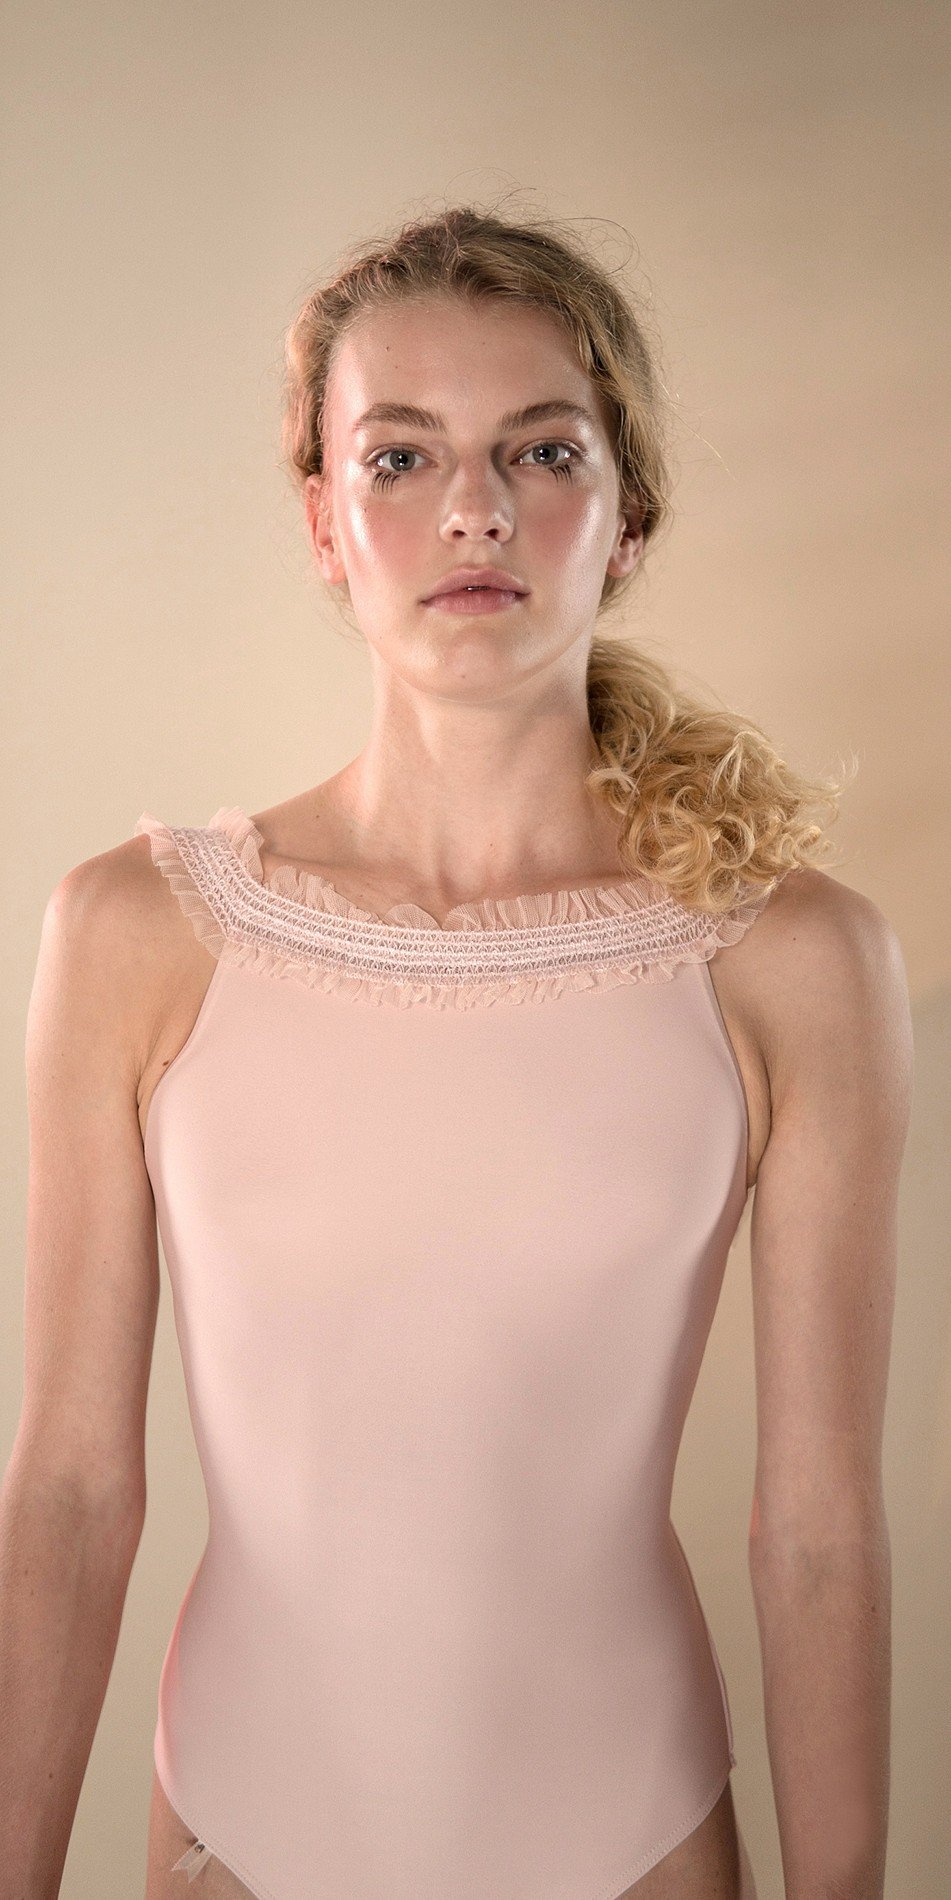 ELEANORE cross back leotard blush 4 r 2